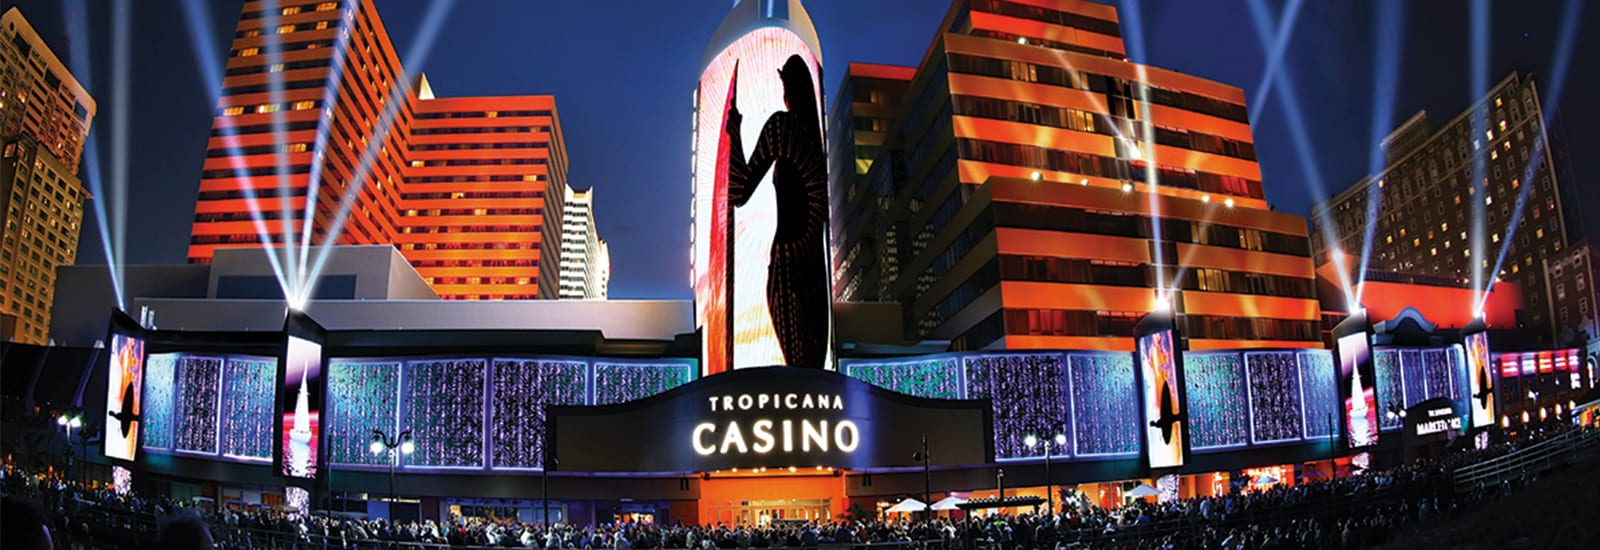 NJ Casino Trips - Tropicana Casino & Resort - LI Casino Transportation